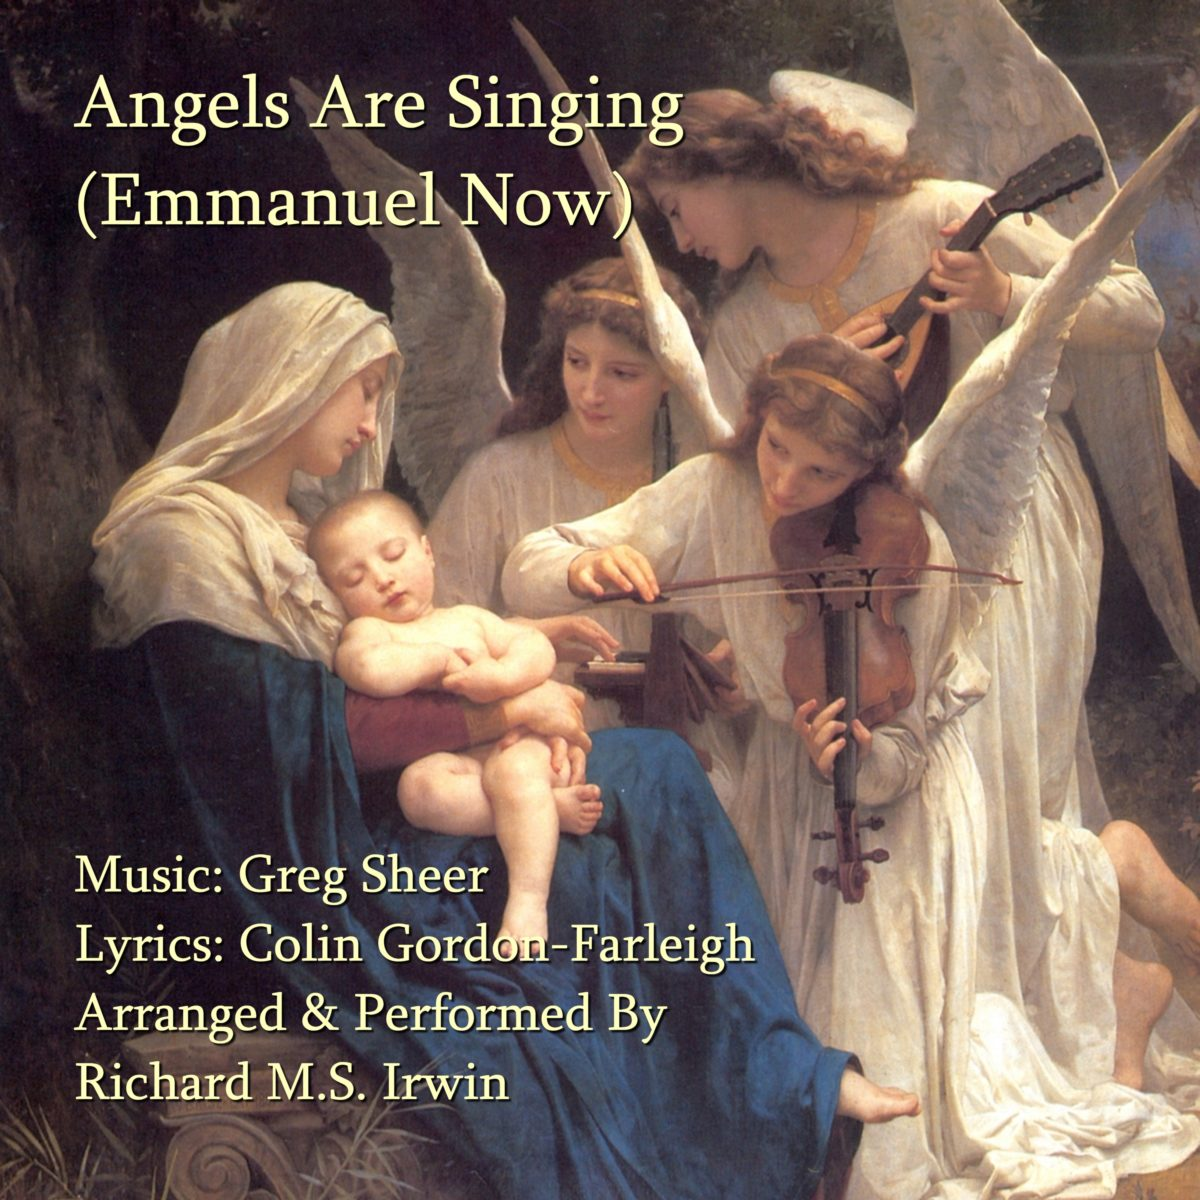 Angels Are Singing (Emmanuel Now 5 Verses) – Piano and SATB or Woodwind and Strings